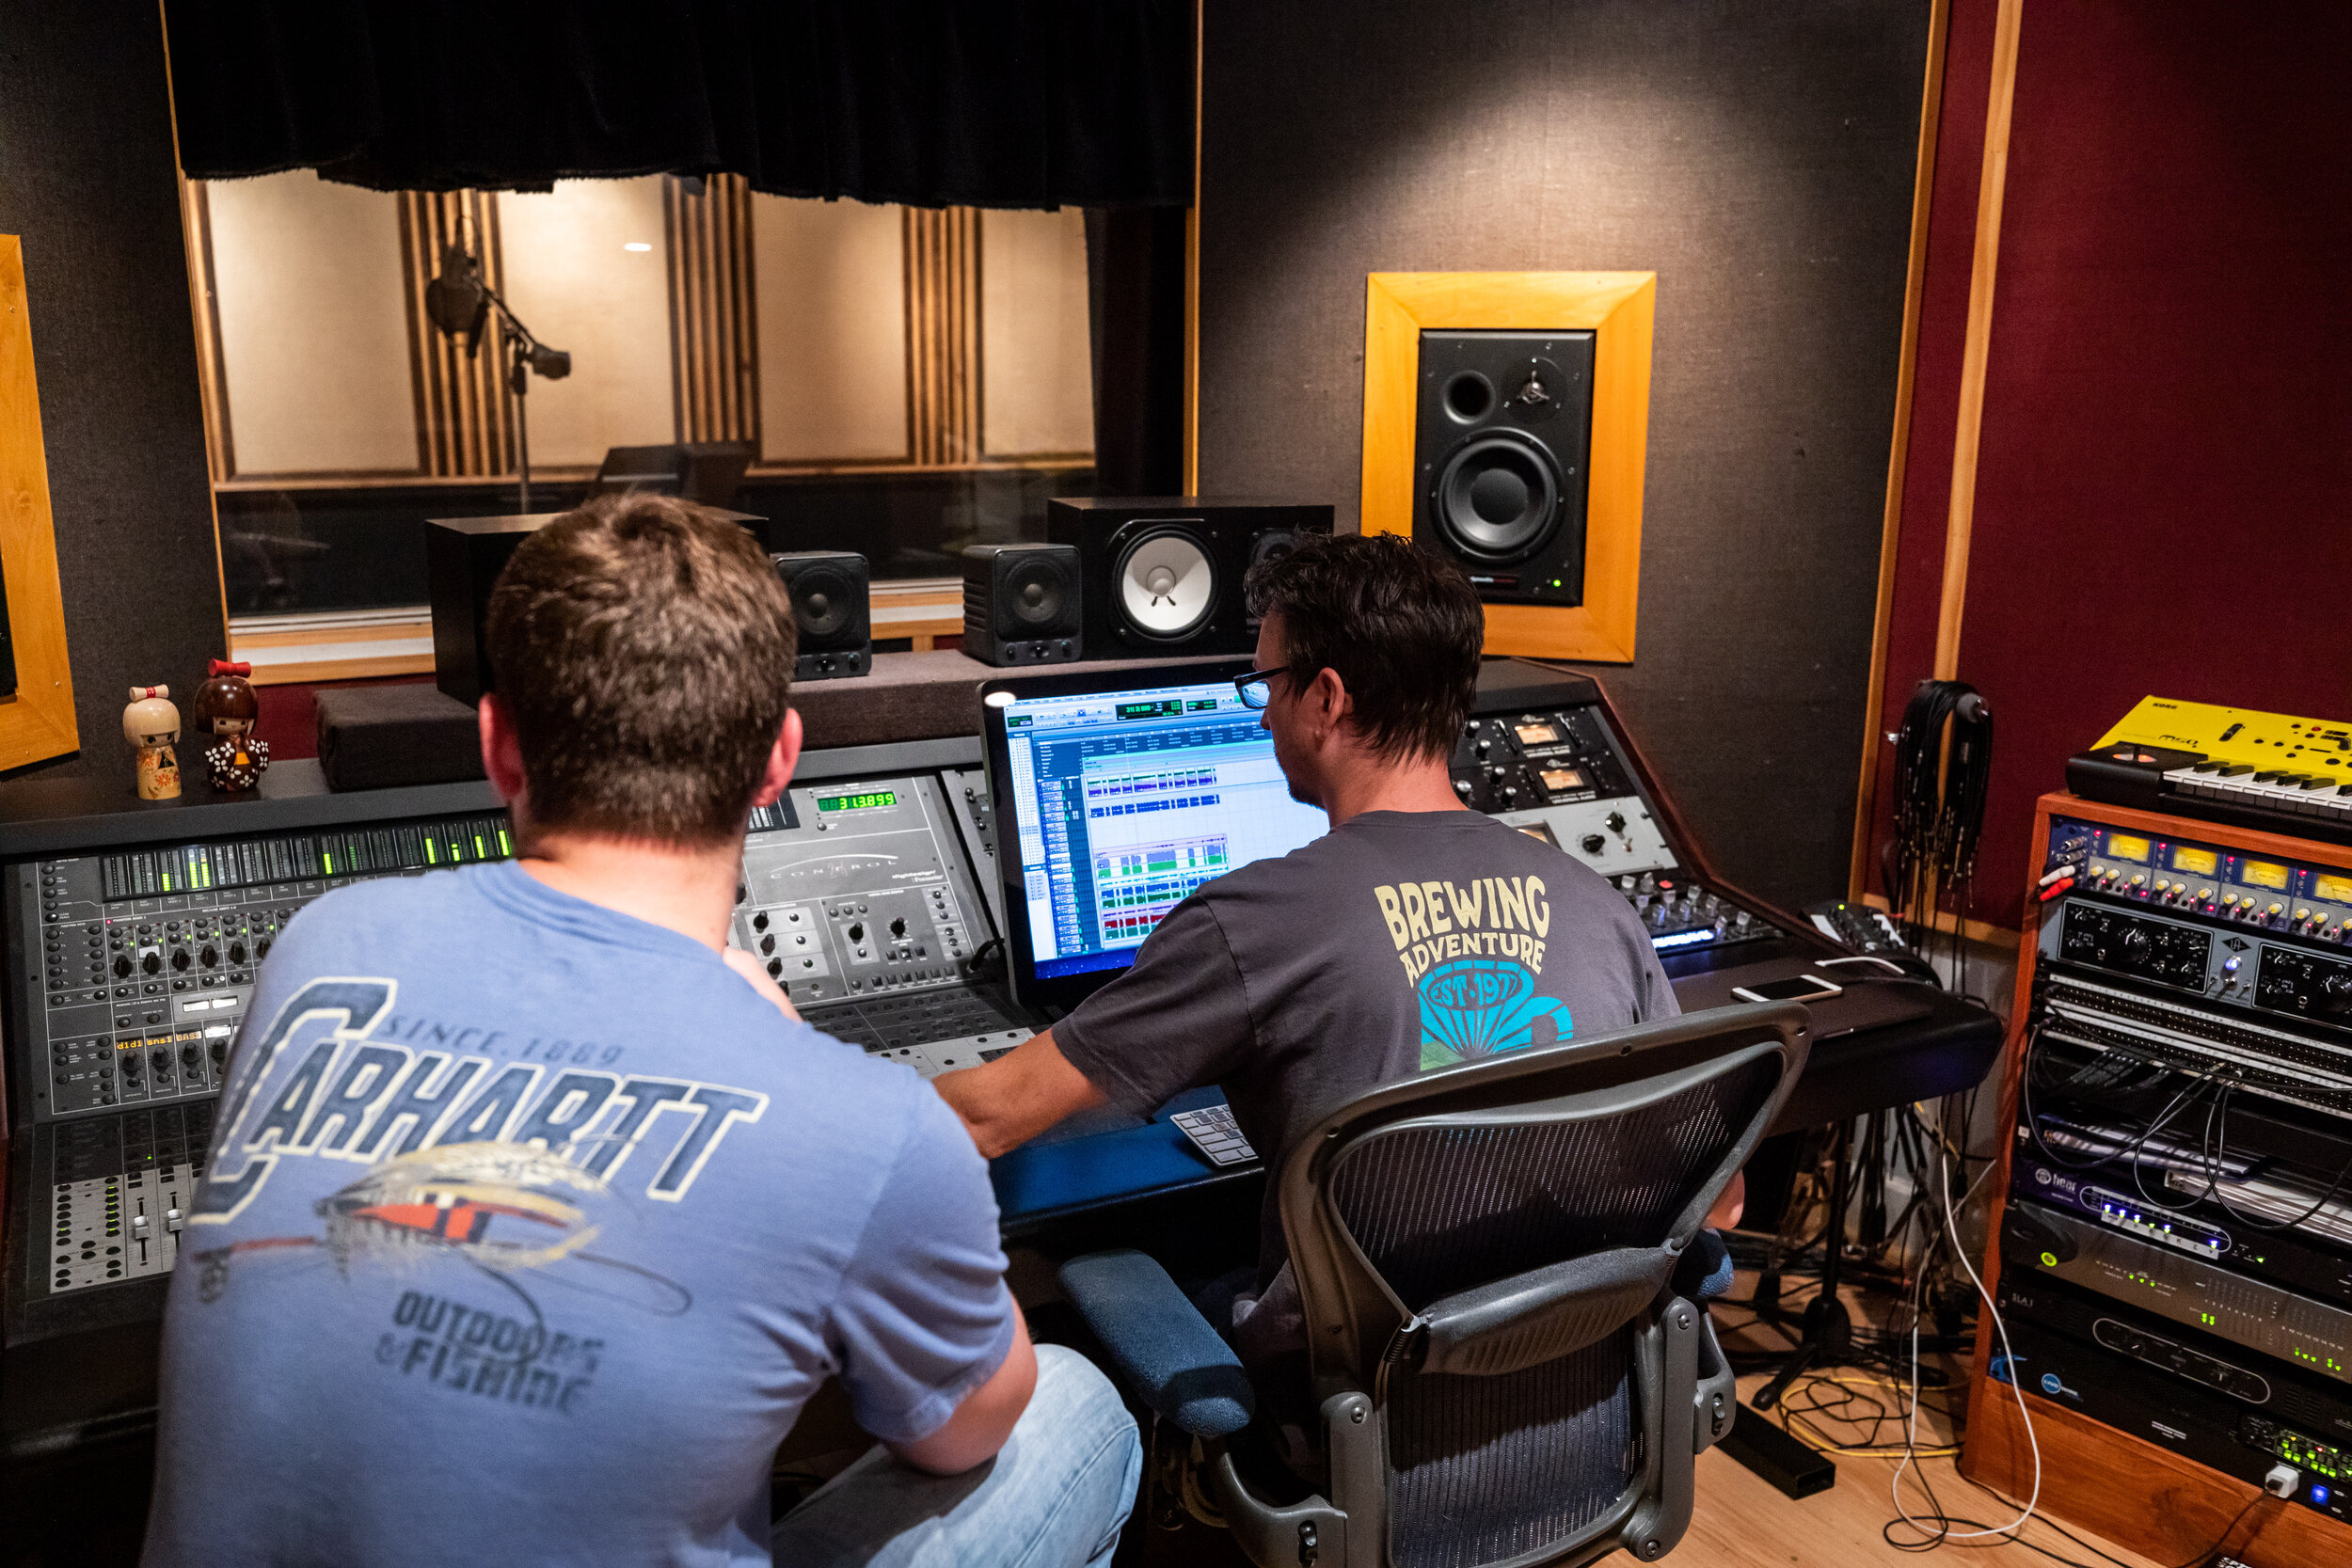 Elliott_Prather_Jason_Andrews_Spotlight_Sound_Studio.JPG